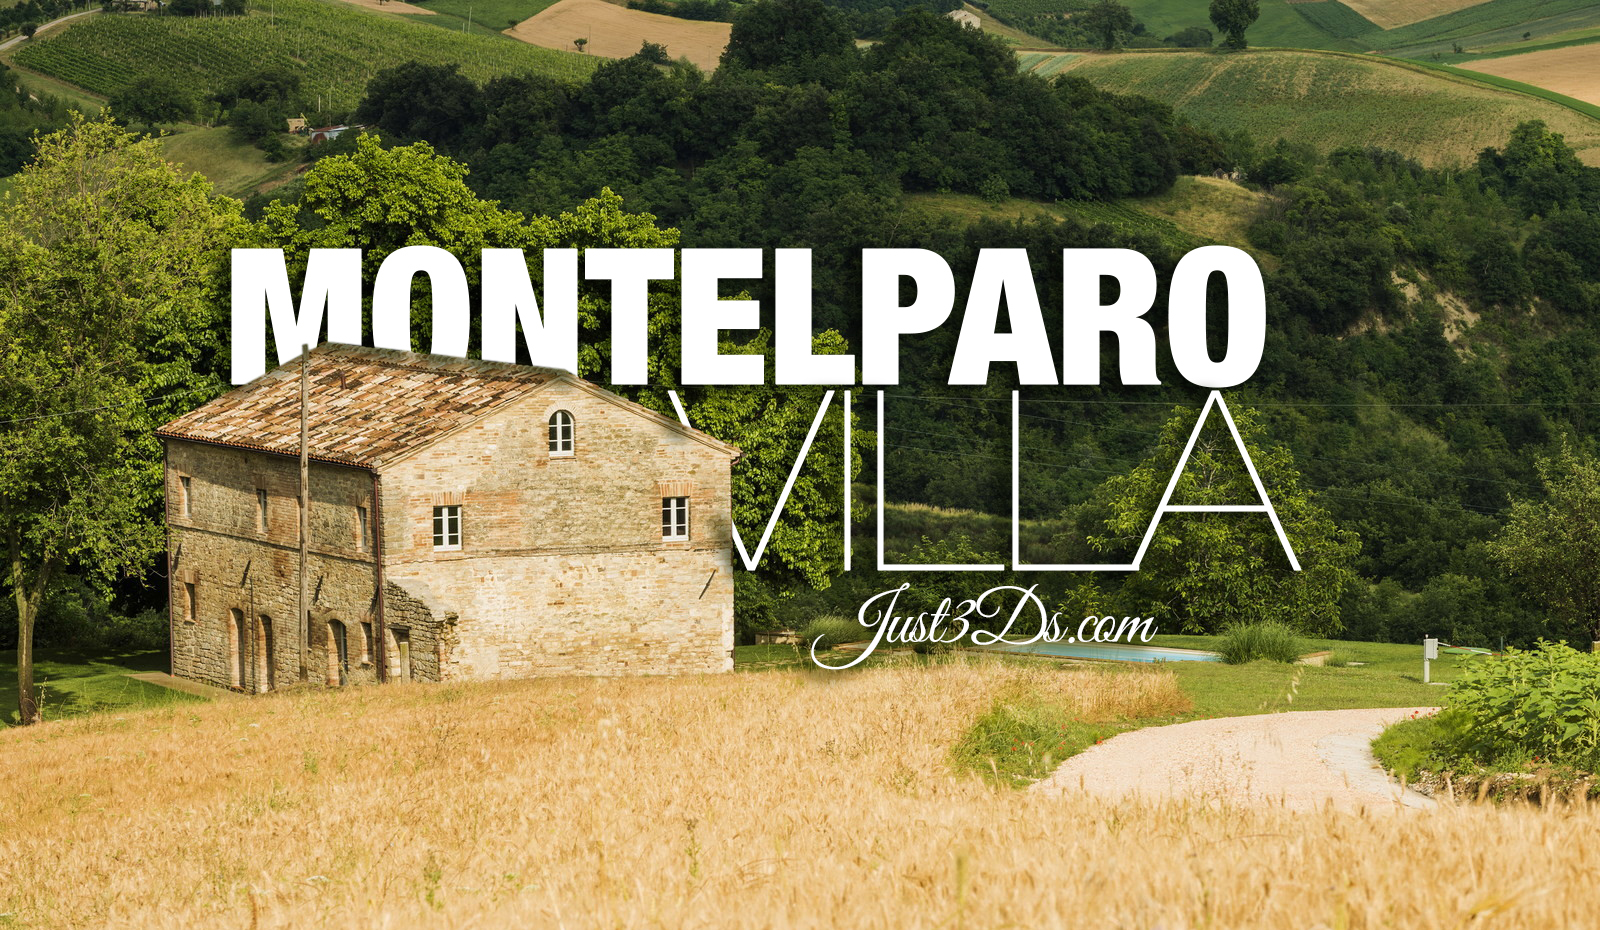 Monterpalo-Villa-just3ds.com